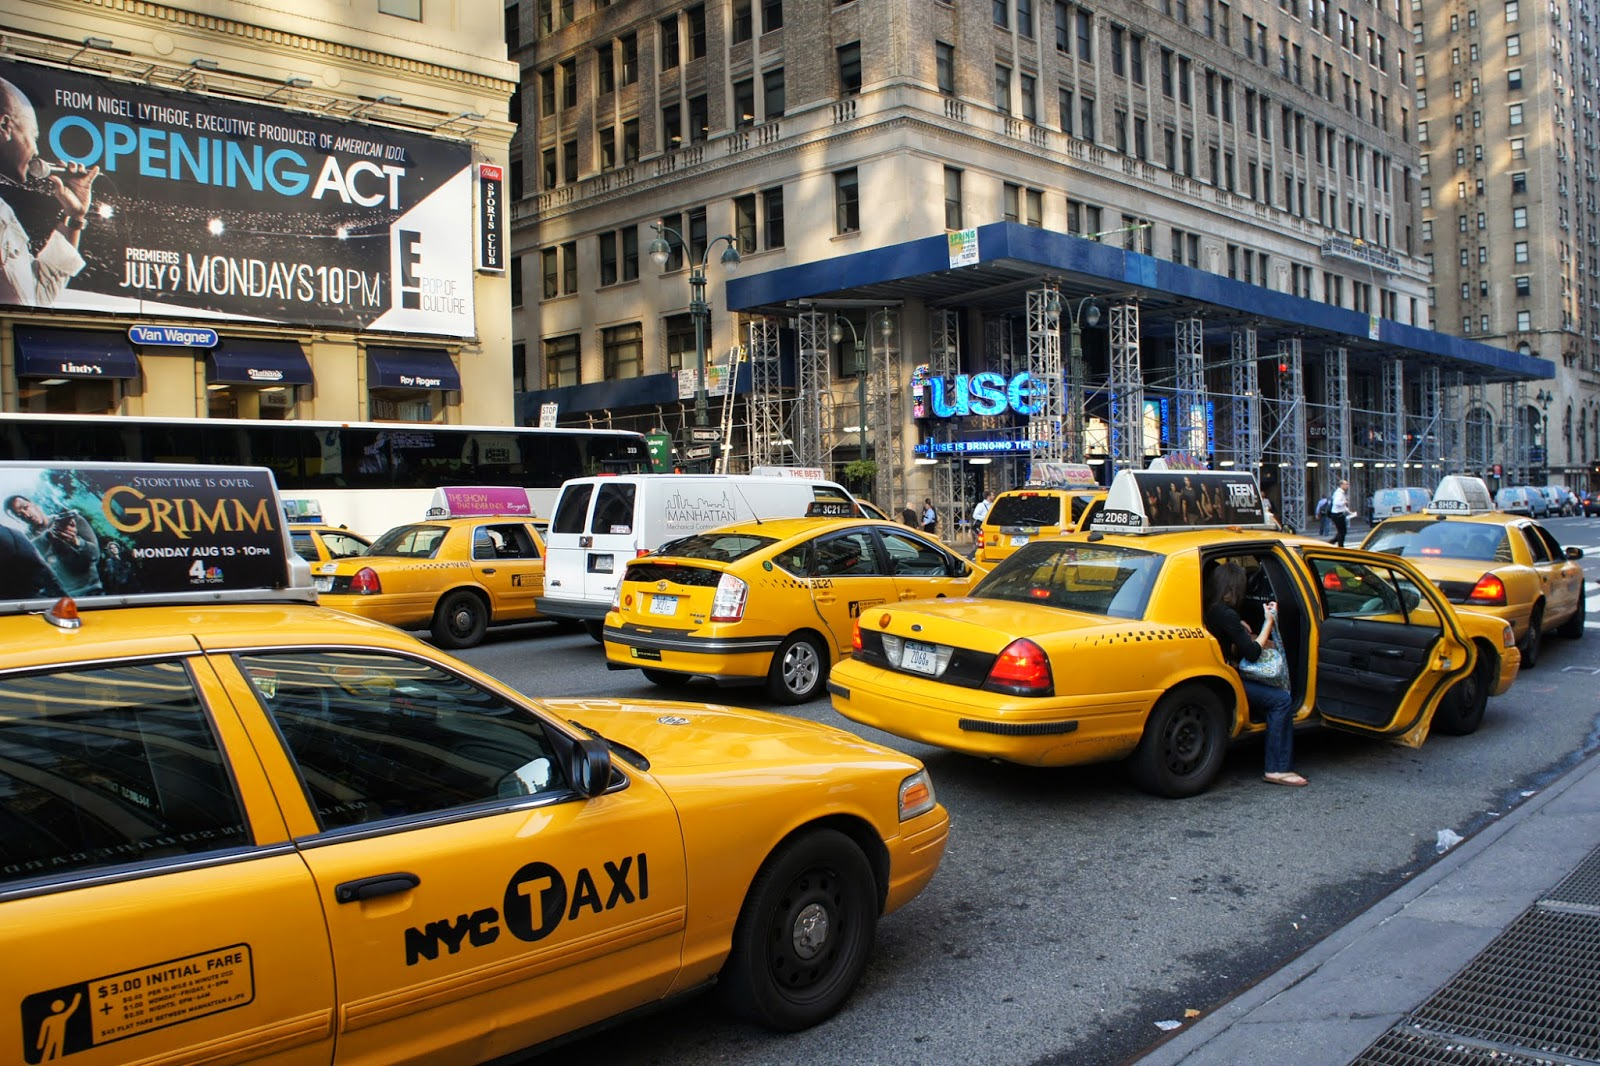 taxi cab economics In new york city where entry into the yellow cabs business is tightly licensed and taxi fares are high, the price of a taxi license is worth a whopping $400,000 (bw.